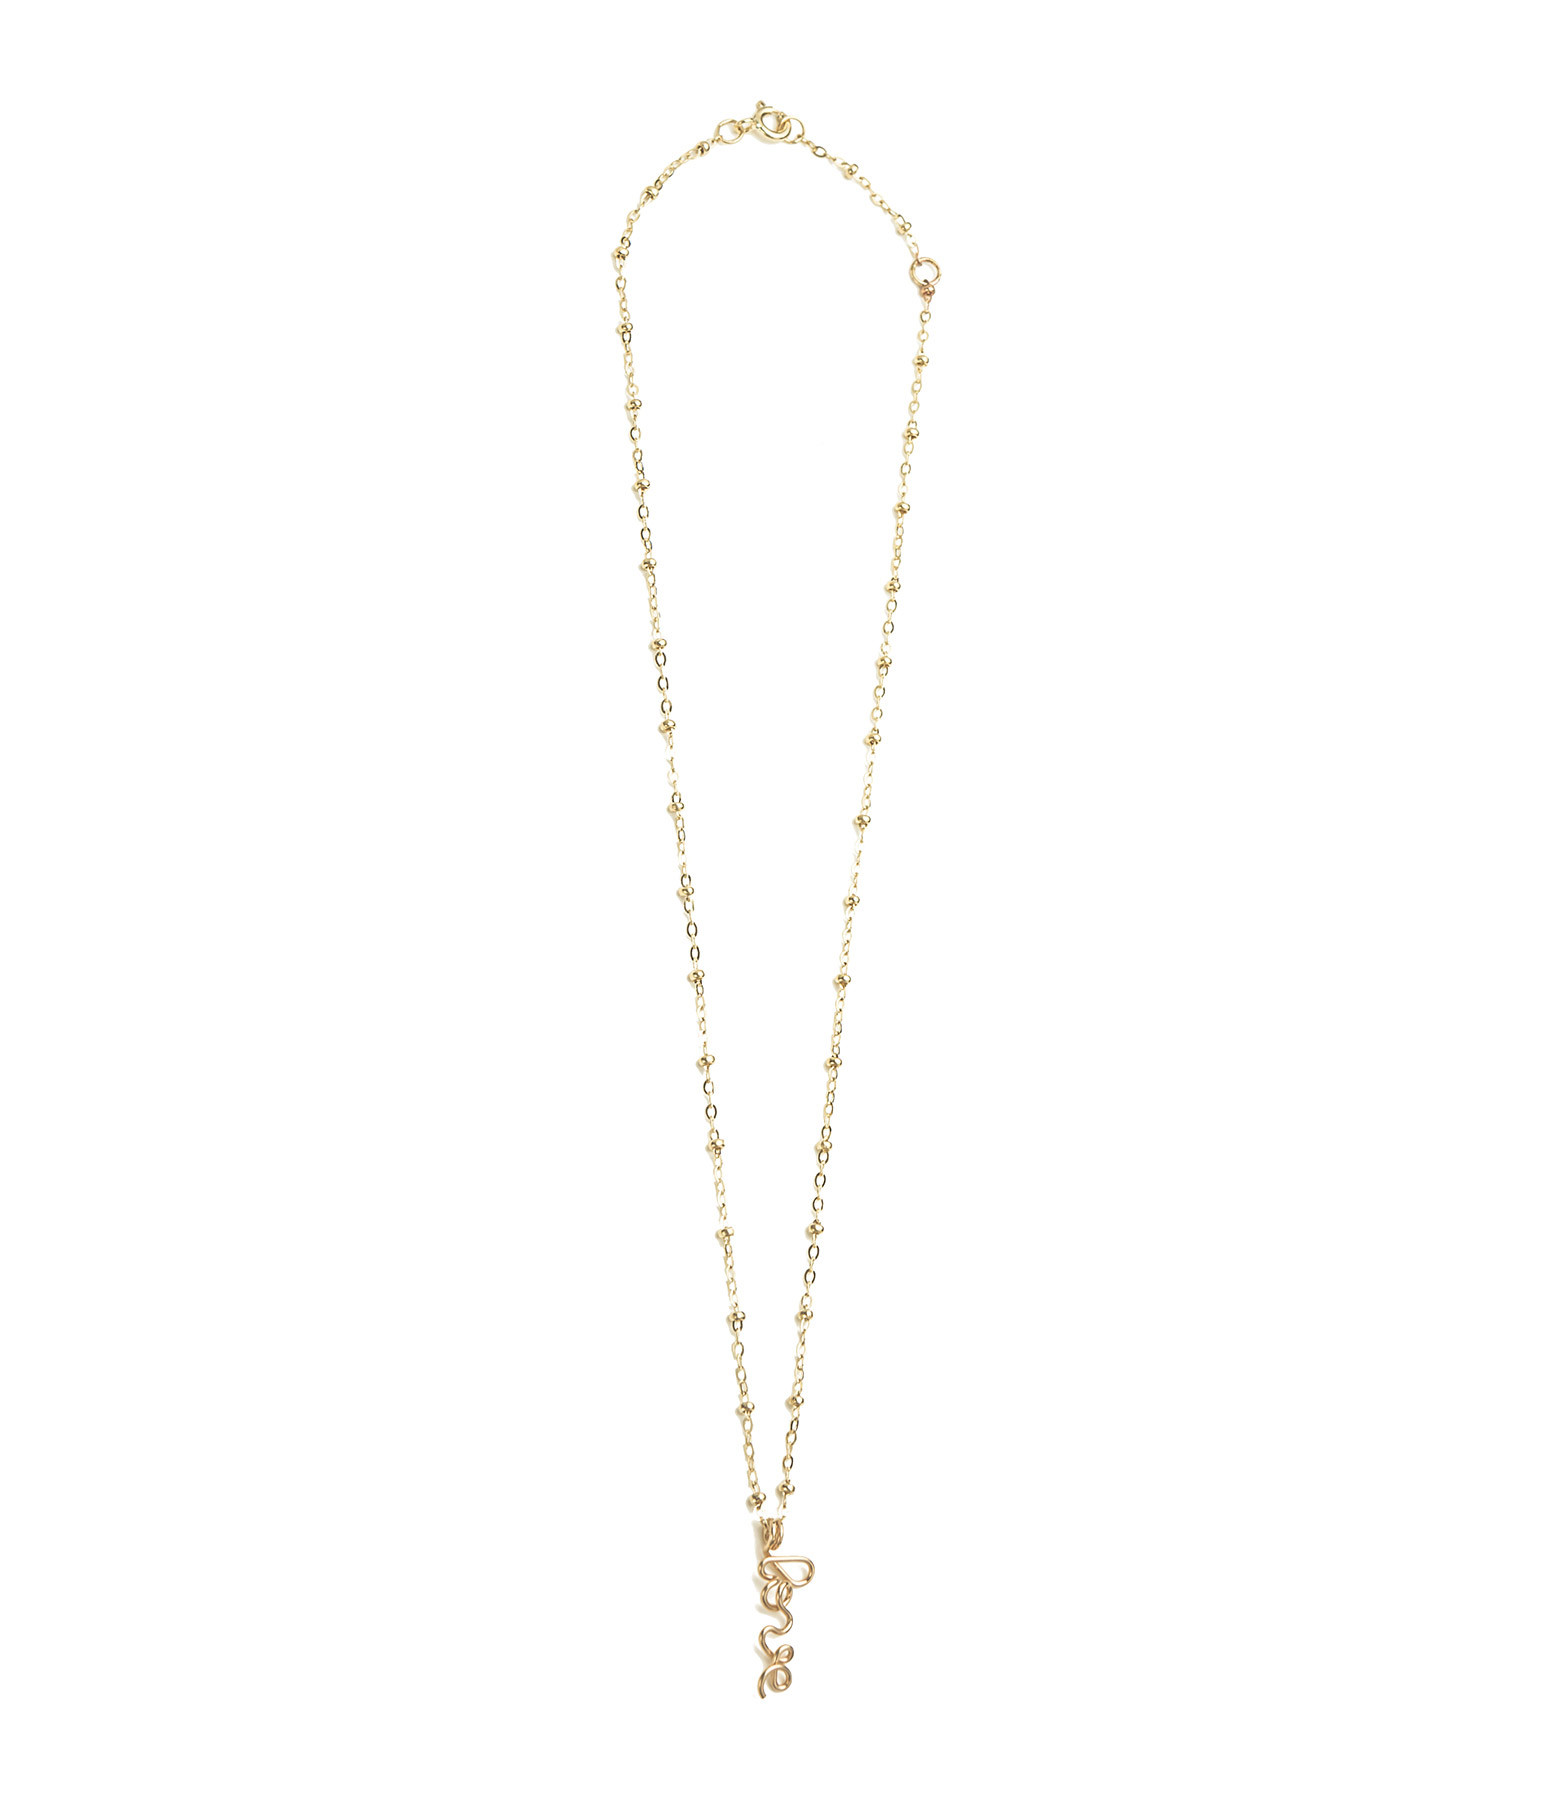 ATELIER PAULIN - Collier Pendentif Original Love Gold Filled 14K